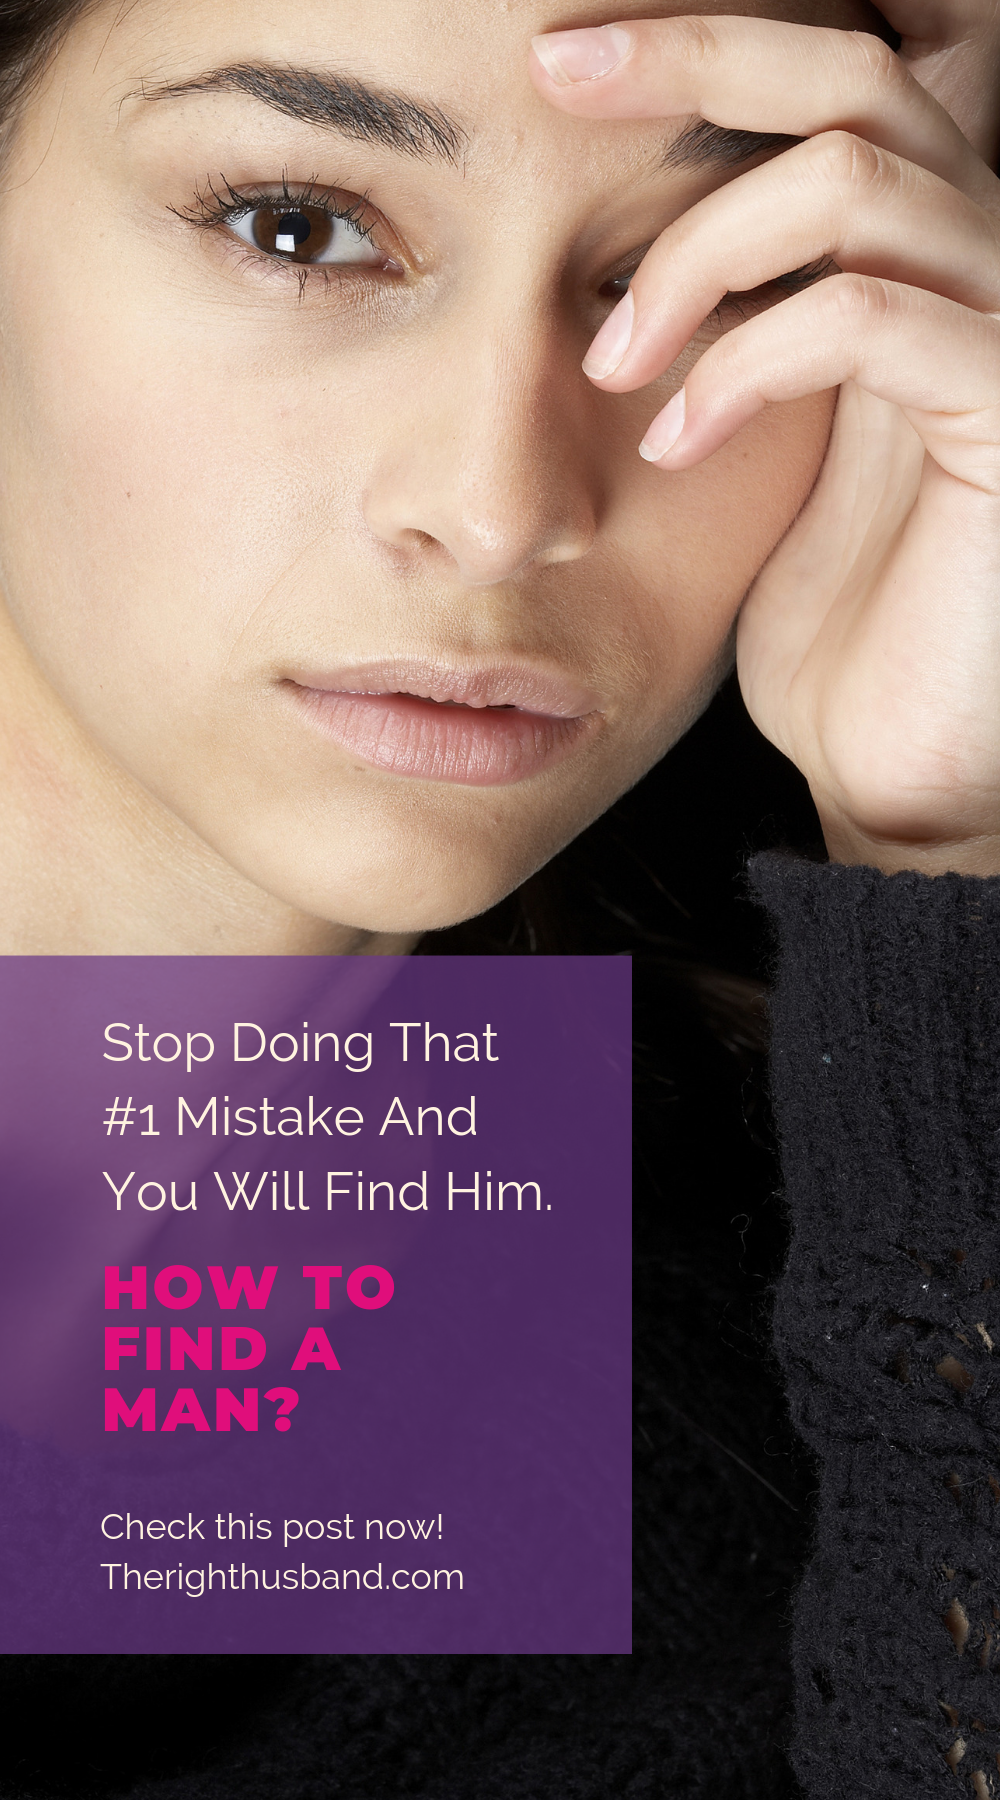 How To Find A Man- Stop Doing That Mistake